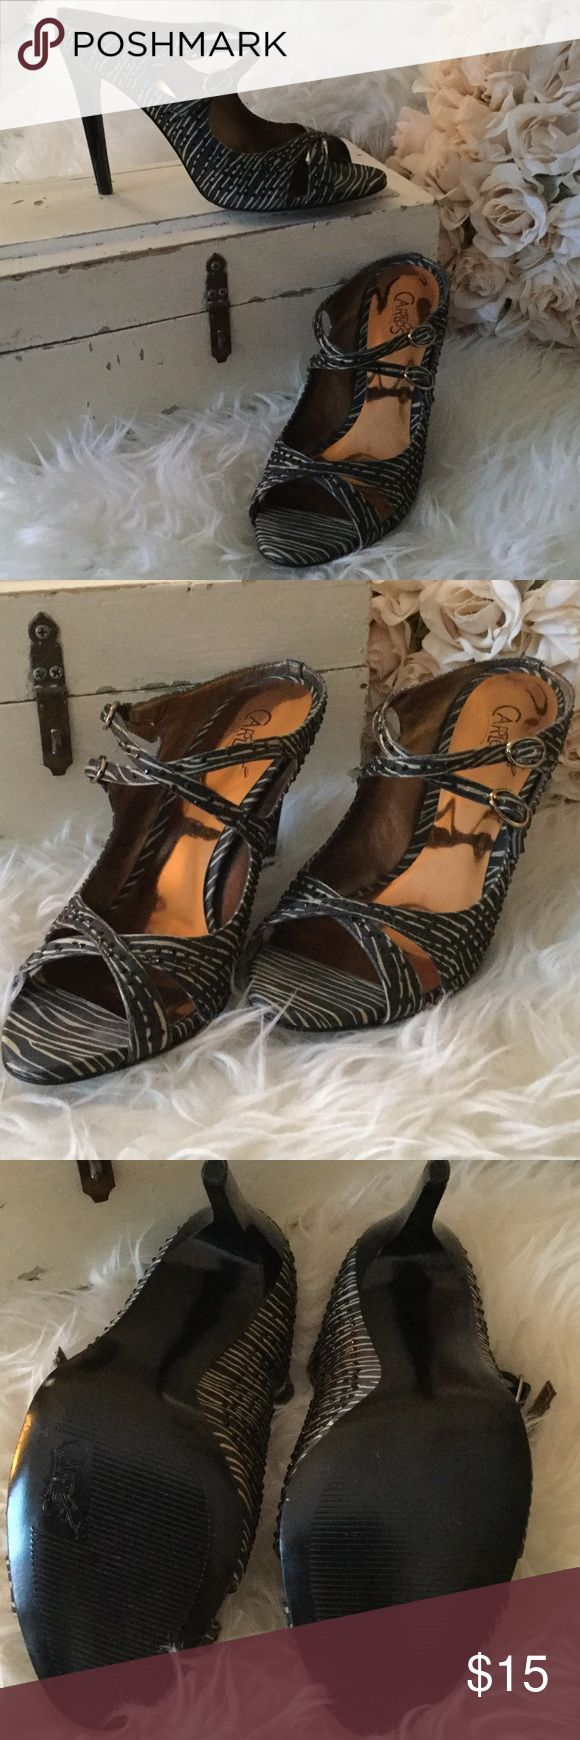 Carlos dress heels Simply beautiful 4 inch heel. Never worn. Pristine condition. Black satin tan strip with tiny adjustable buckles.... and little black sparkle studs....Slip these beauties on and they will be the envy of all the women! Carlos Shoes Heels